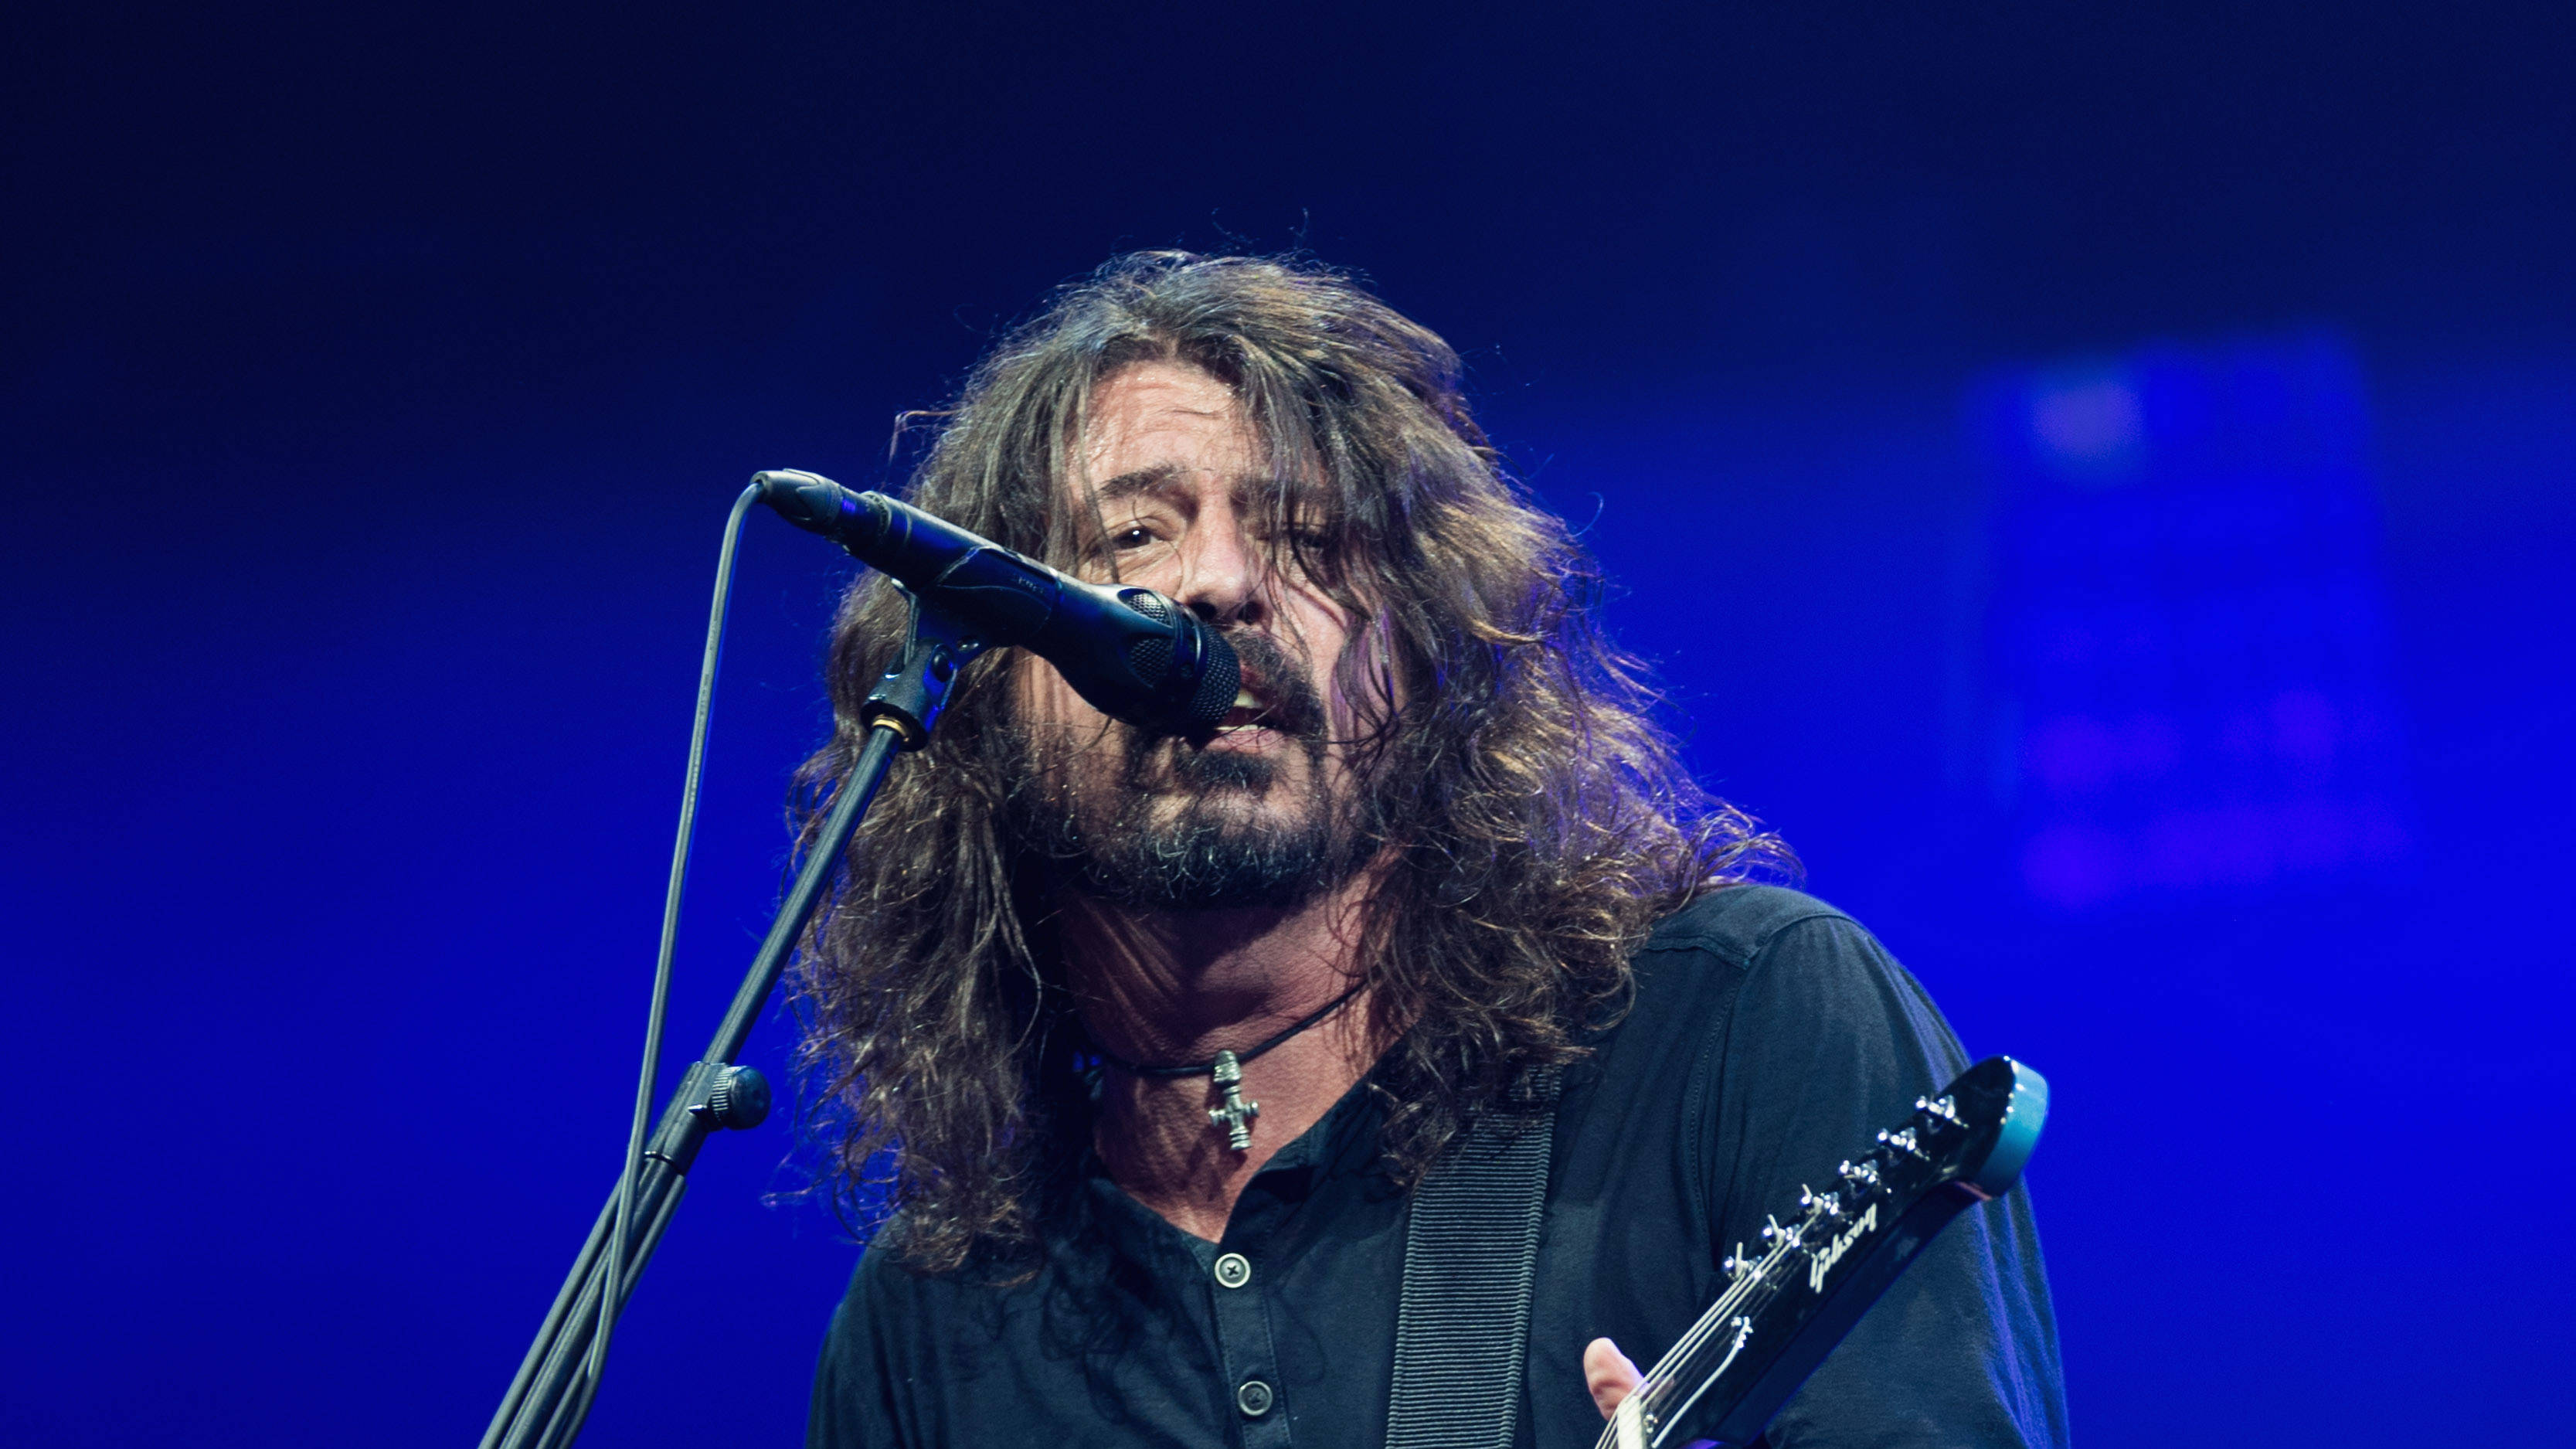 Dave Grohl: Performing Everlong still chokes me up